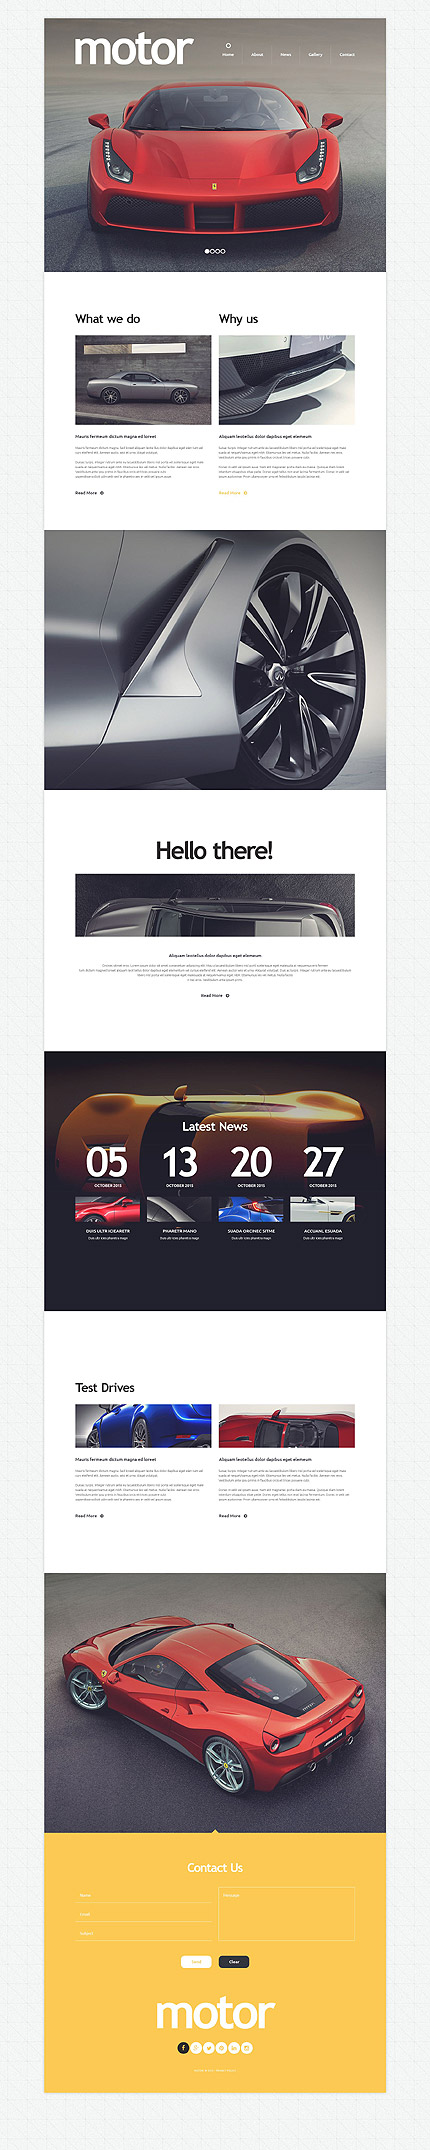 Template 53820 - Motor Cars Responsive Drupal Template with Slider, Gallery, Blog, Parallax, Lazy Load Effect